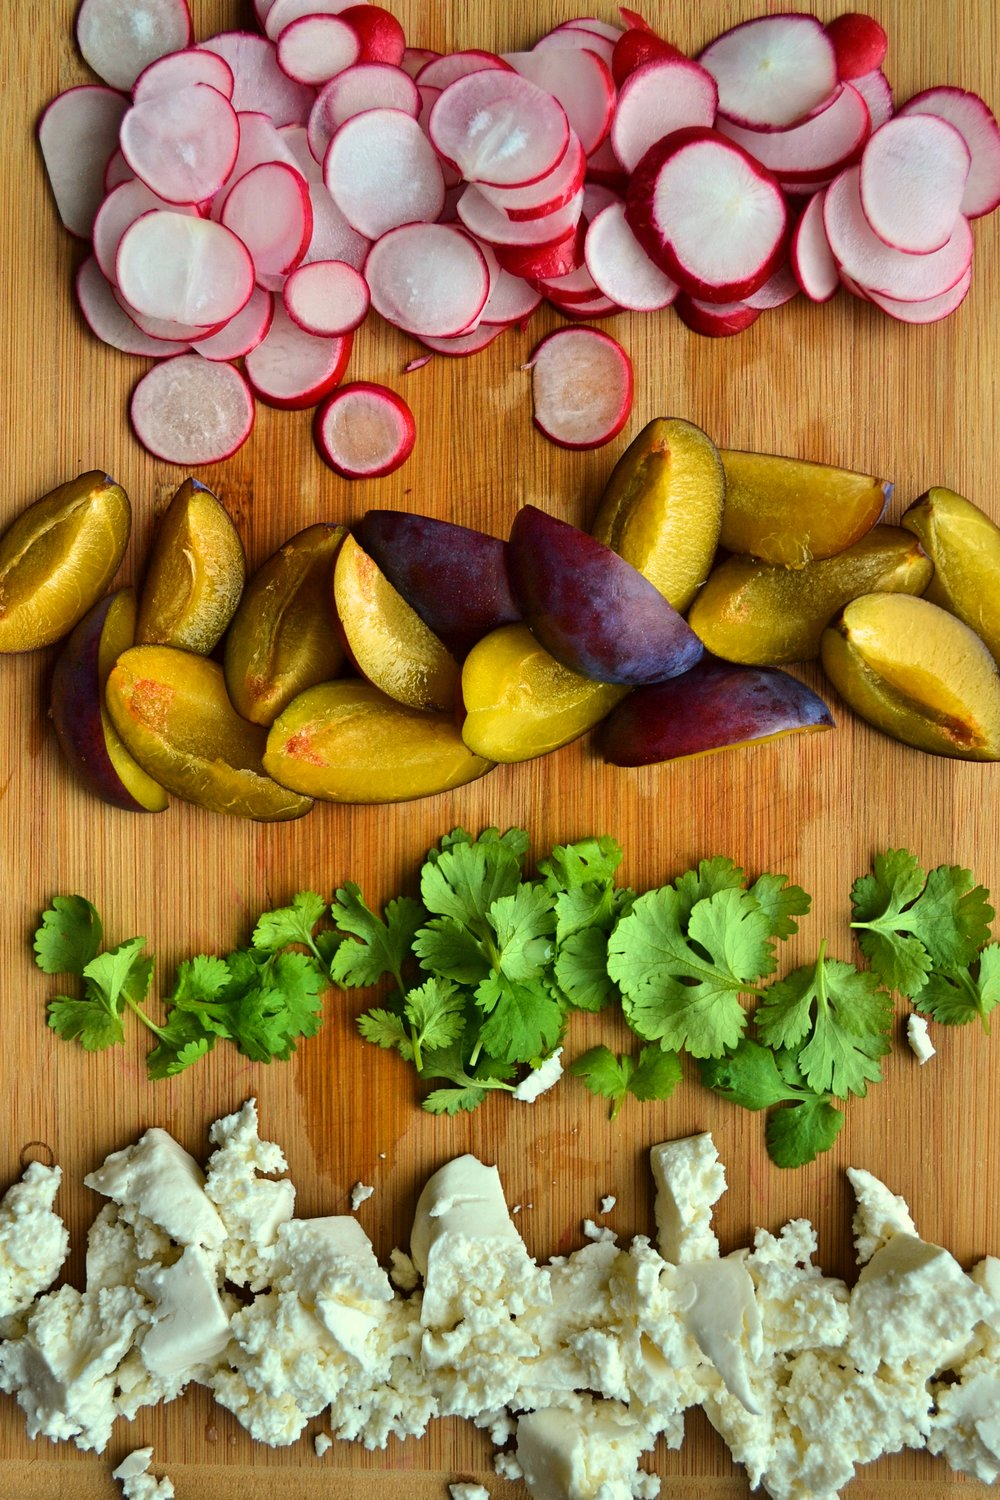 Plum_radishes_goat_cheese_cilantro_salad2.jpg